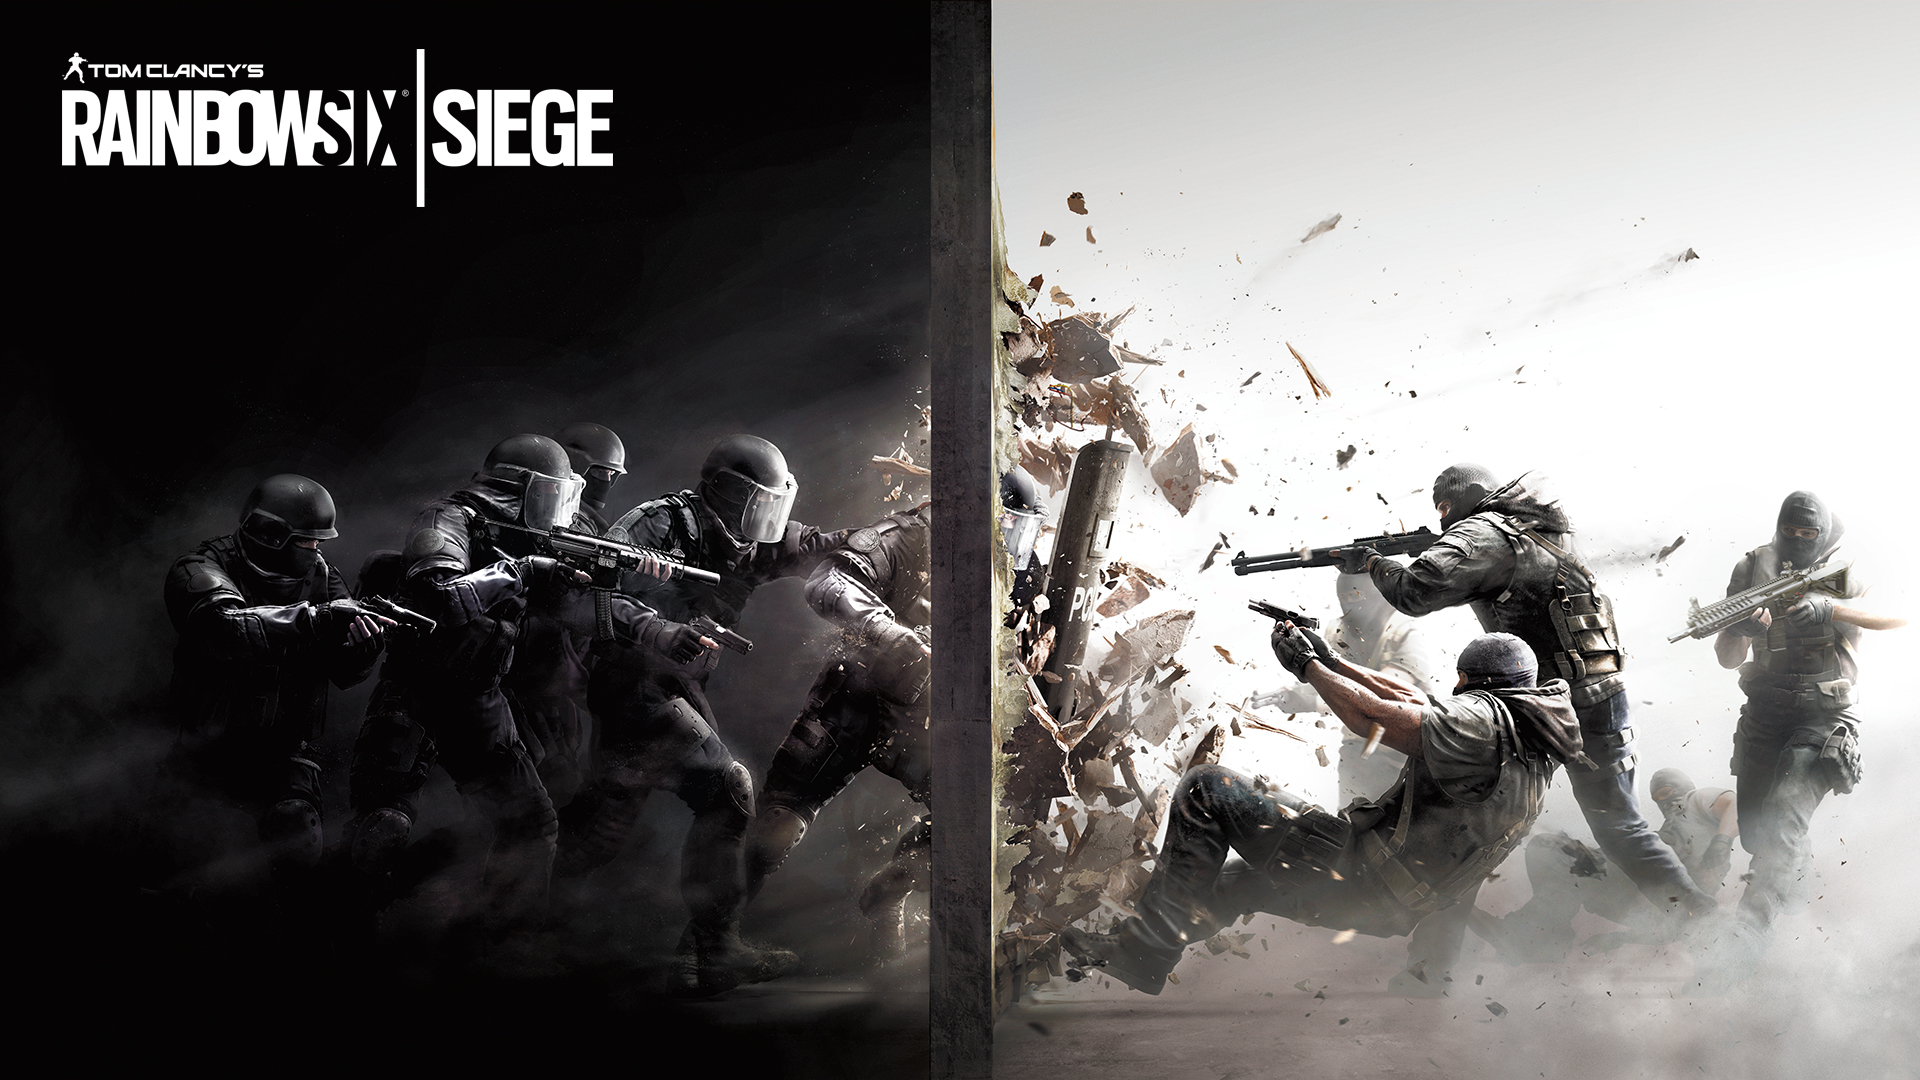 Rainbow Six Siege is free to play this weekend on Xbox One